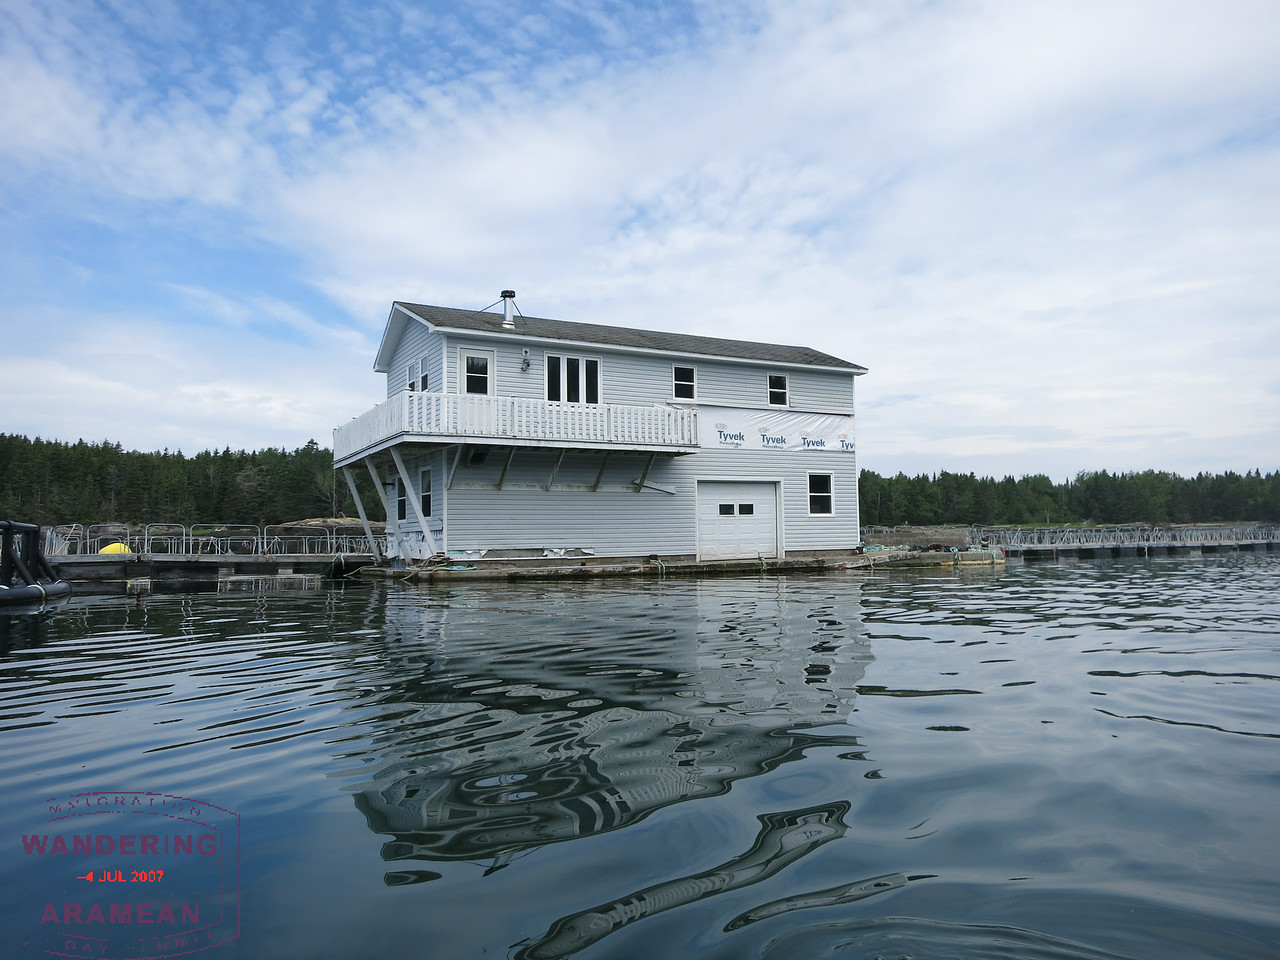 Yes, they use garage doors on to the water